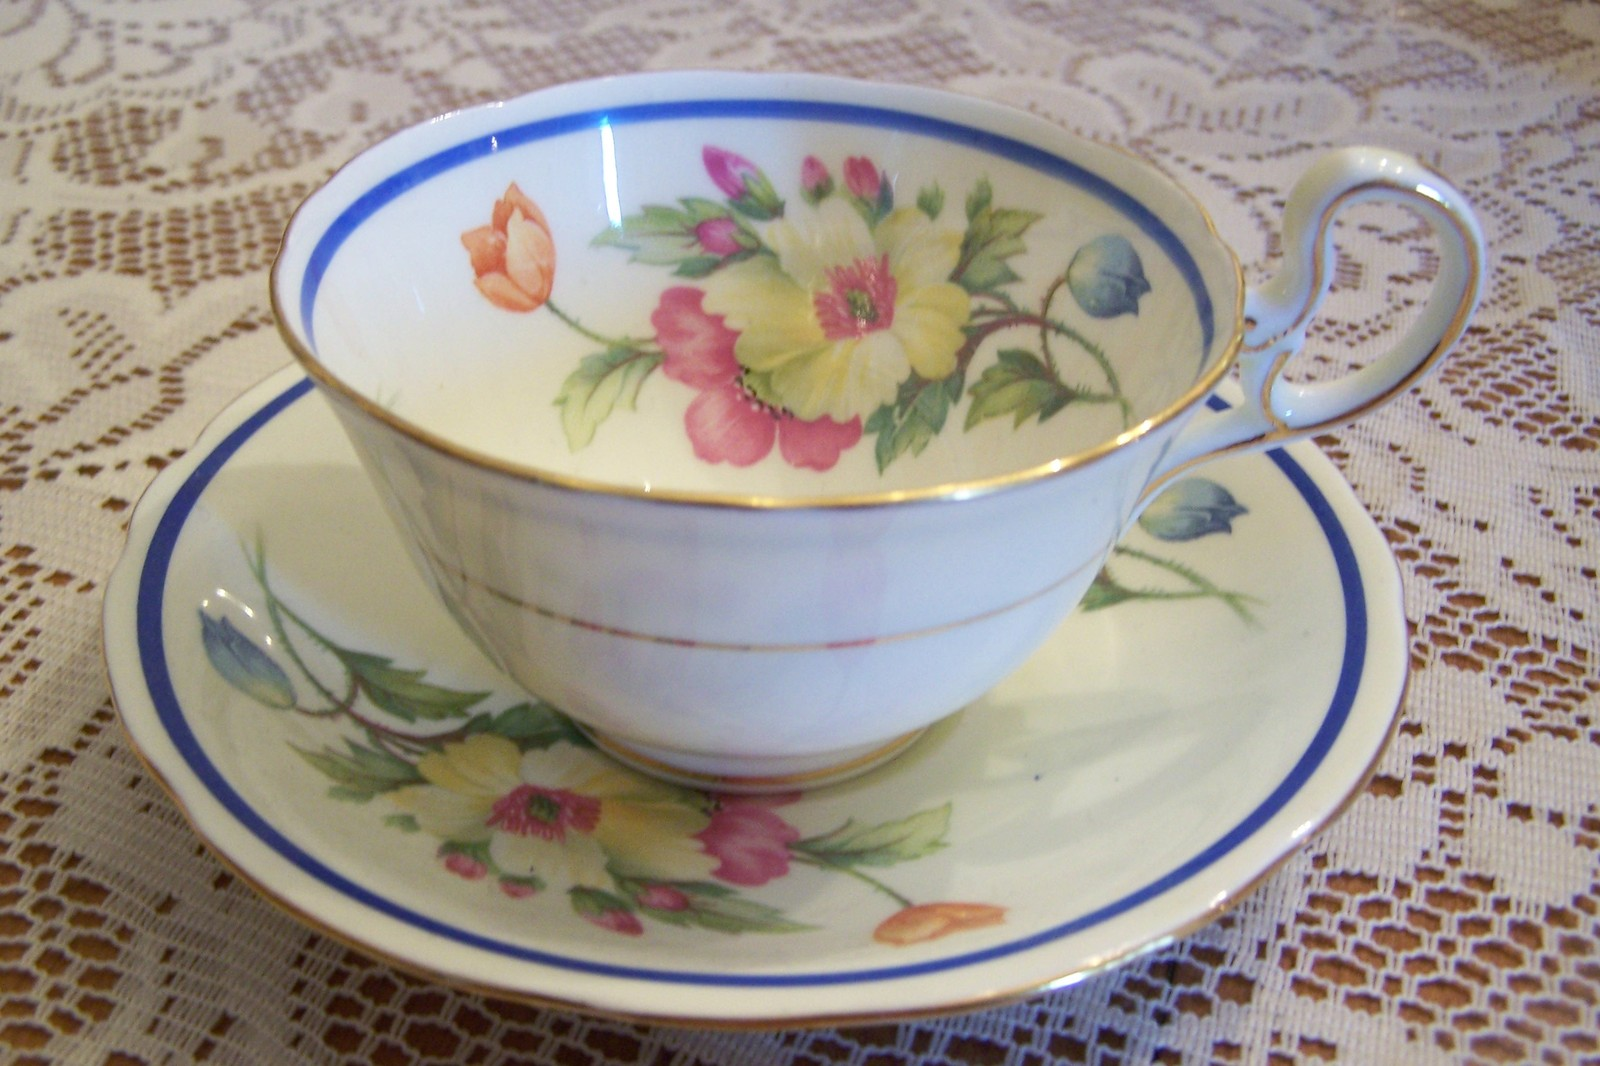 Anysley   gainsborough low foot teacup saucer 001